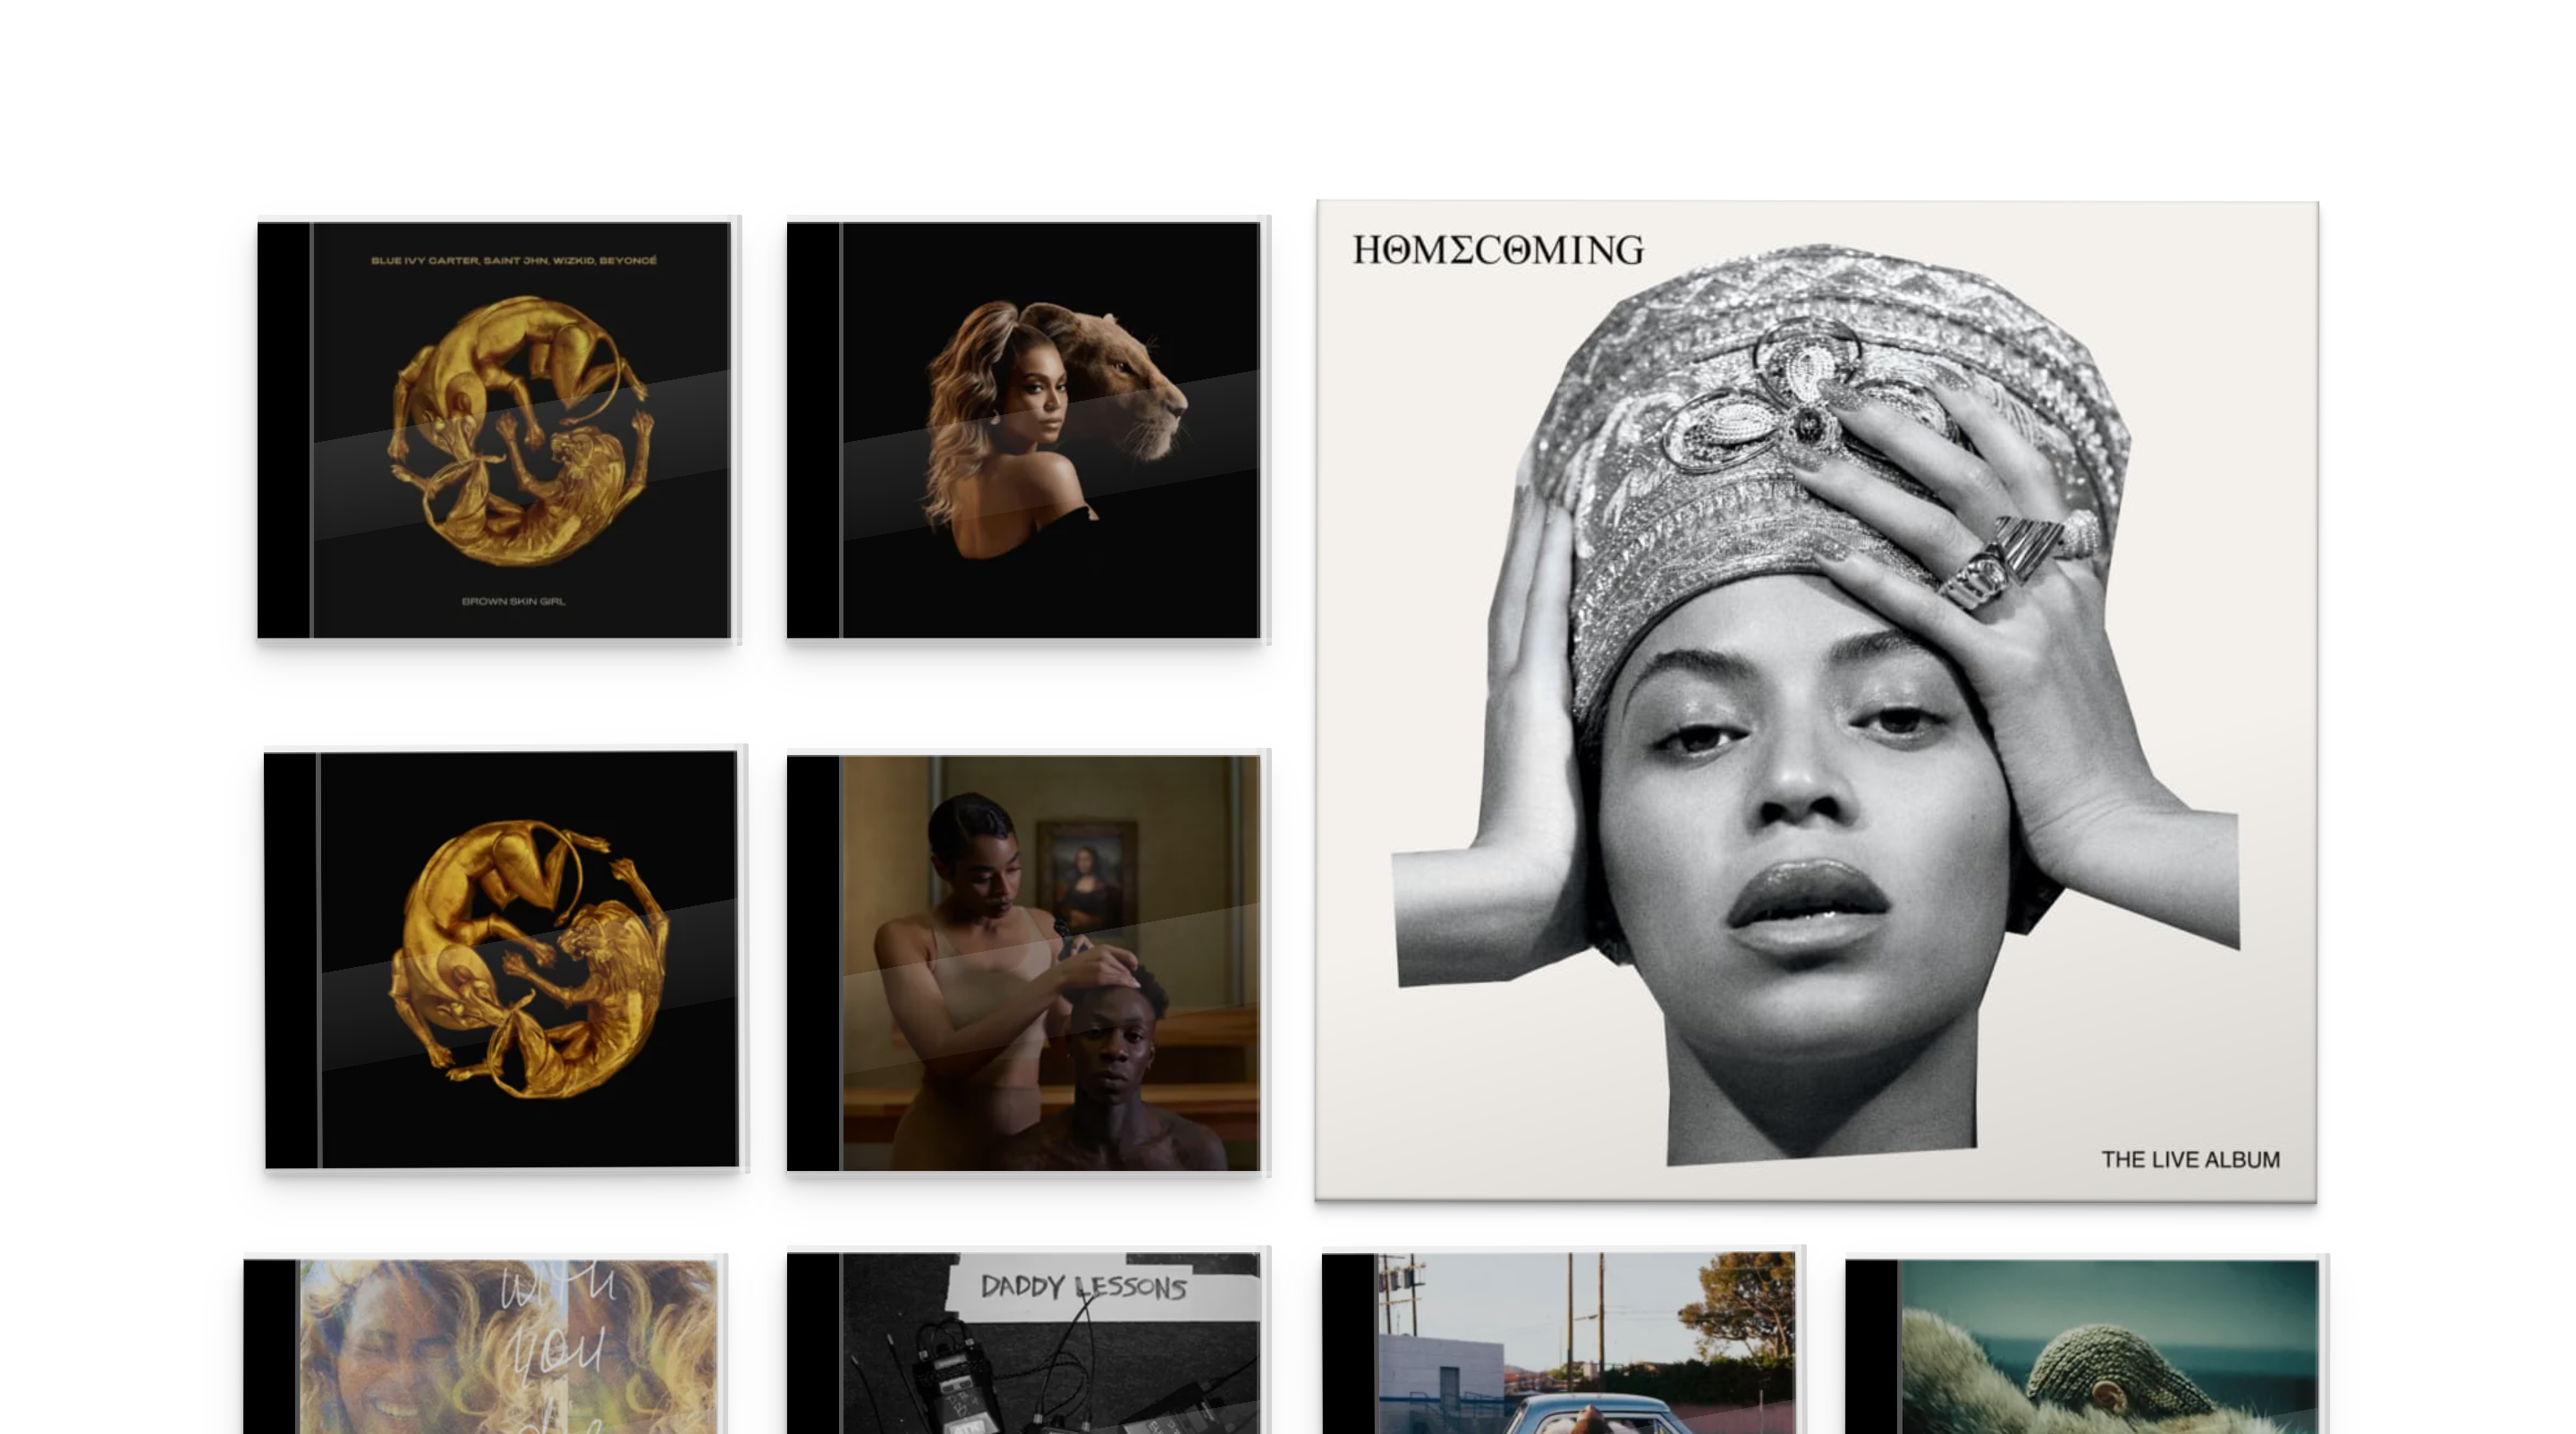 Grid of Beyoncé album covers arranged differently to accommodate a smaller browser